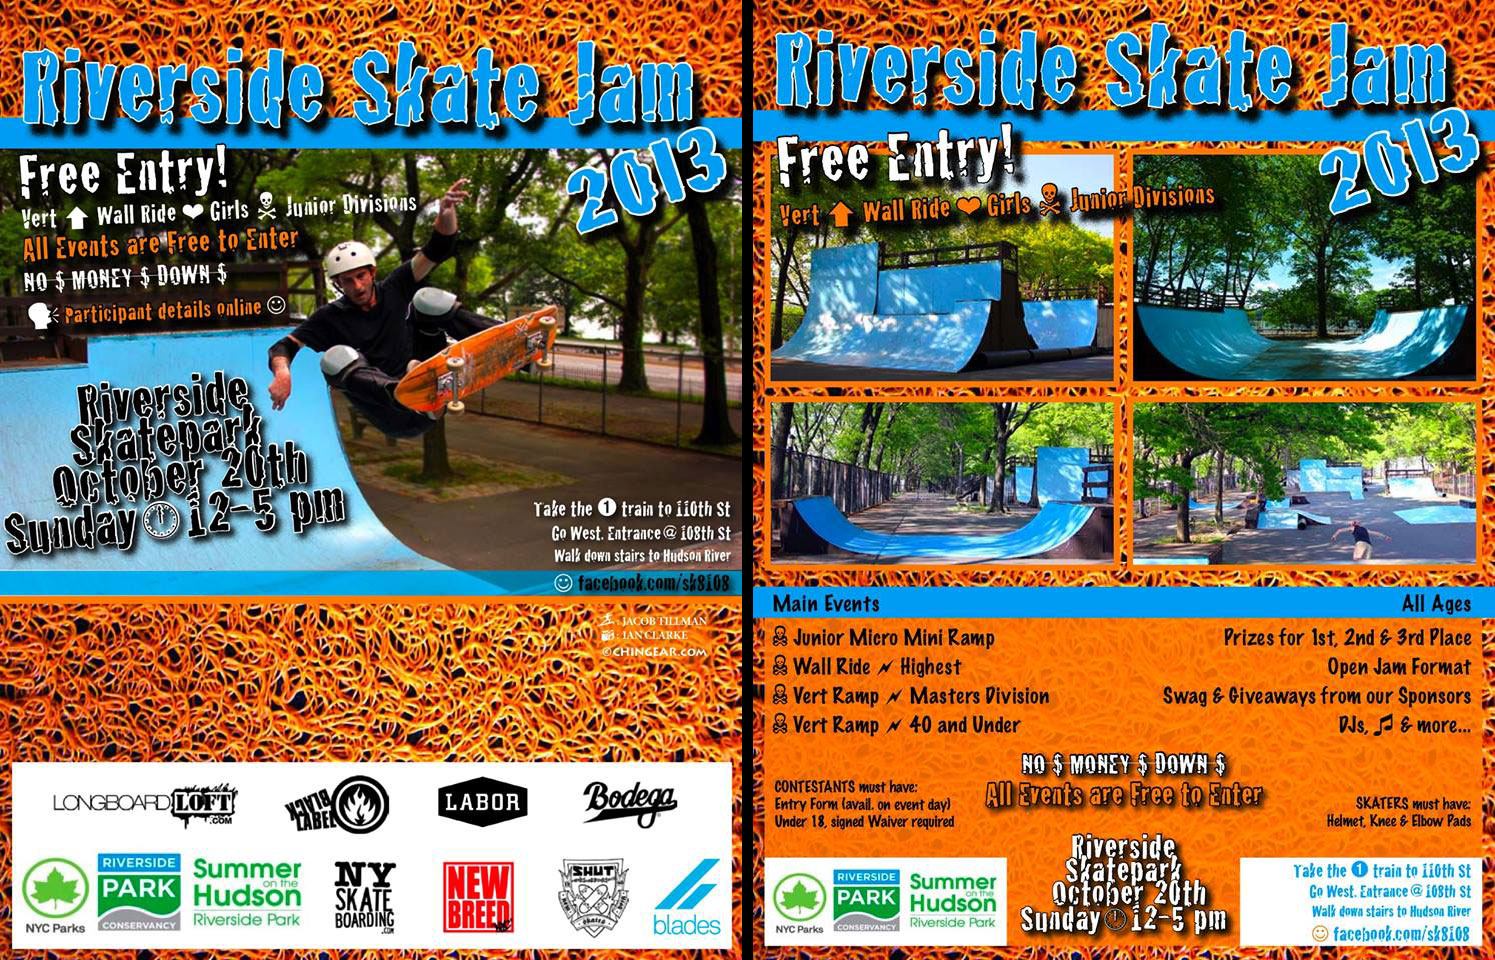 Today: Riverside Skate Jam (2013)